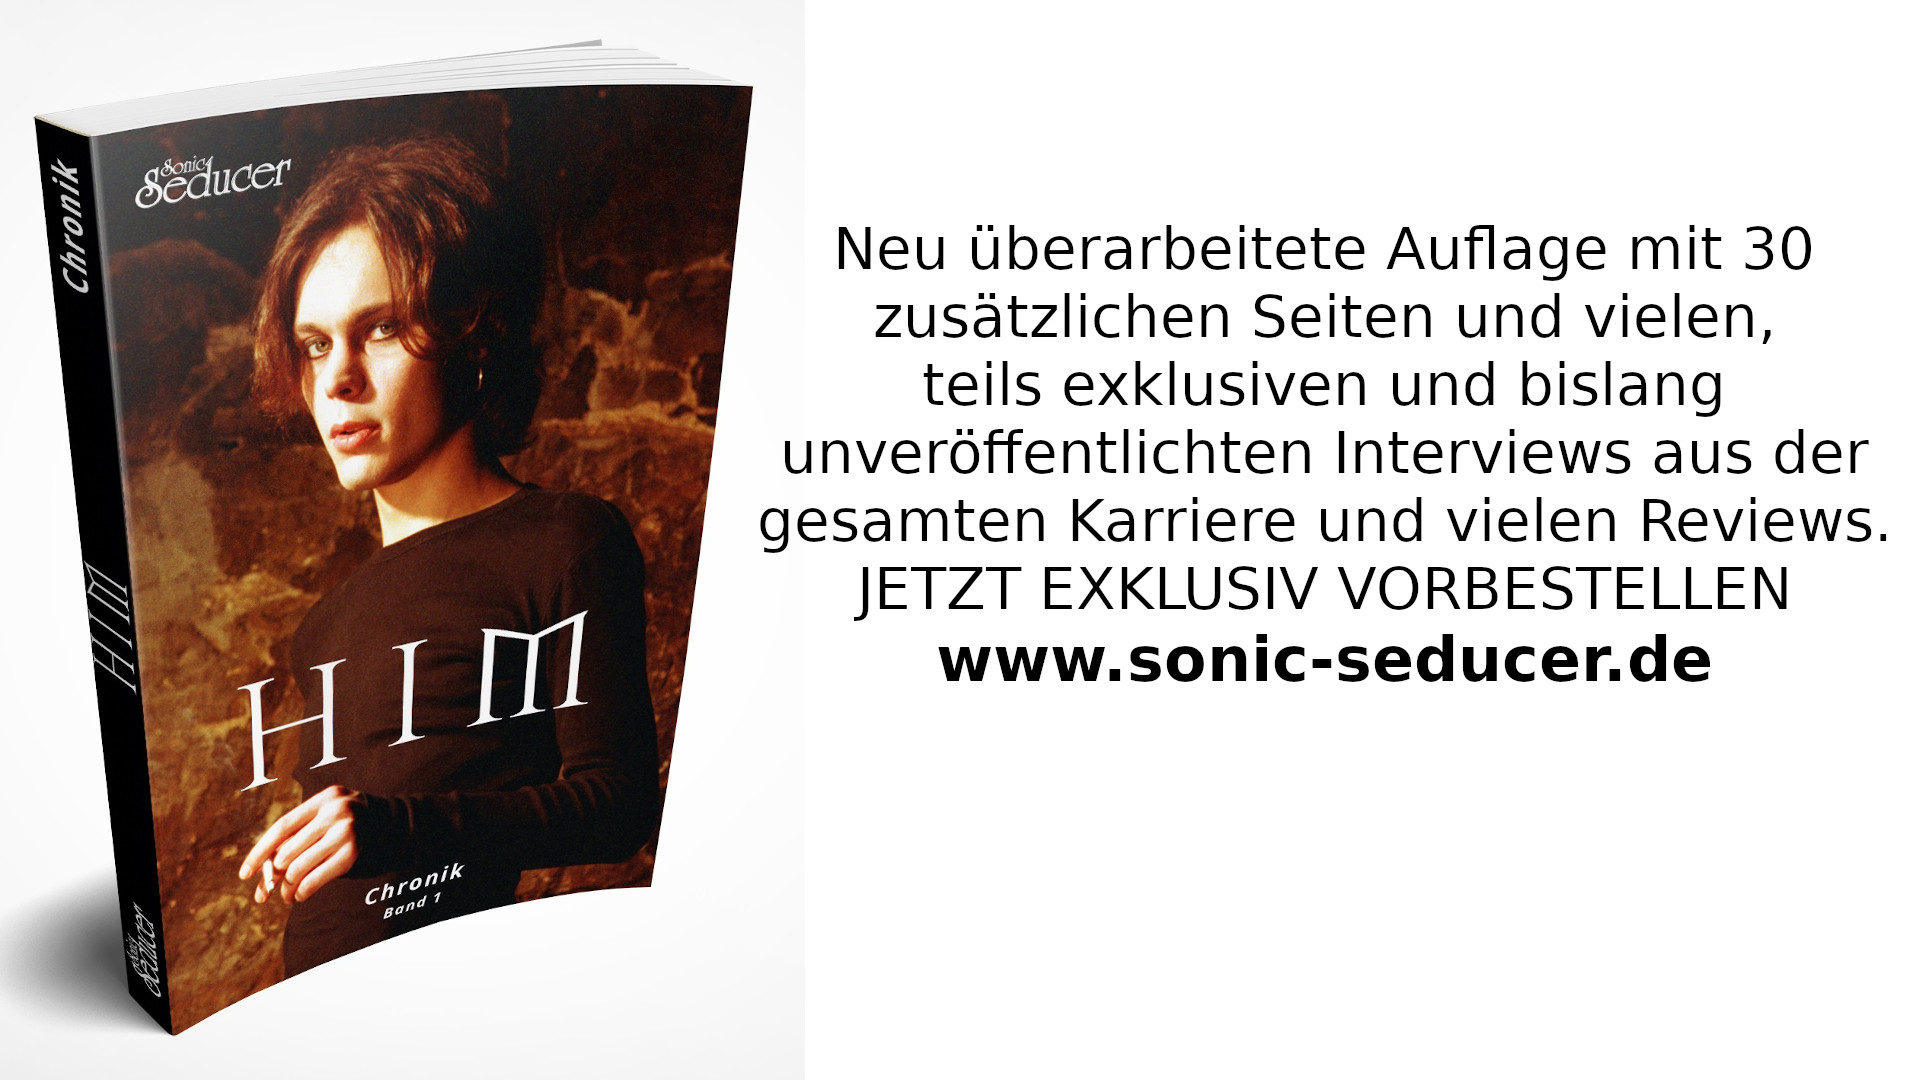 him chronik neue infos homepage